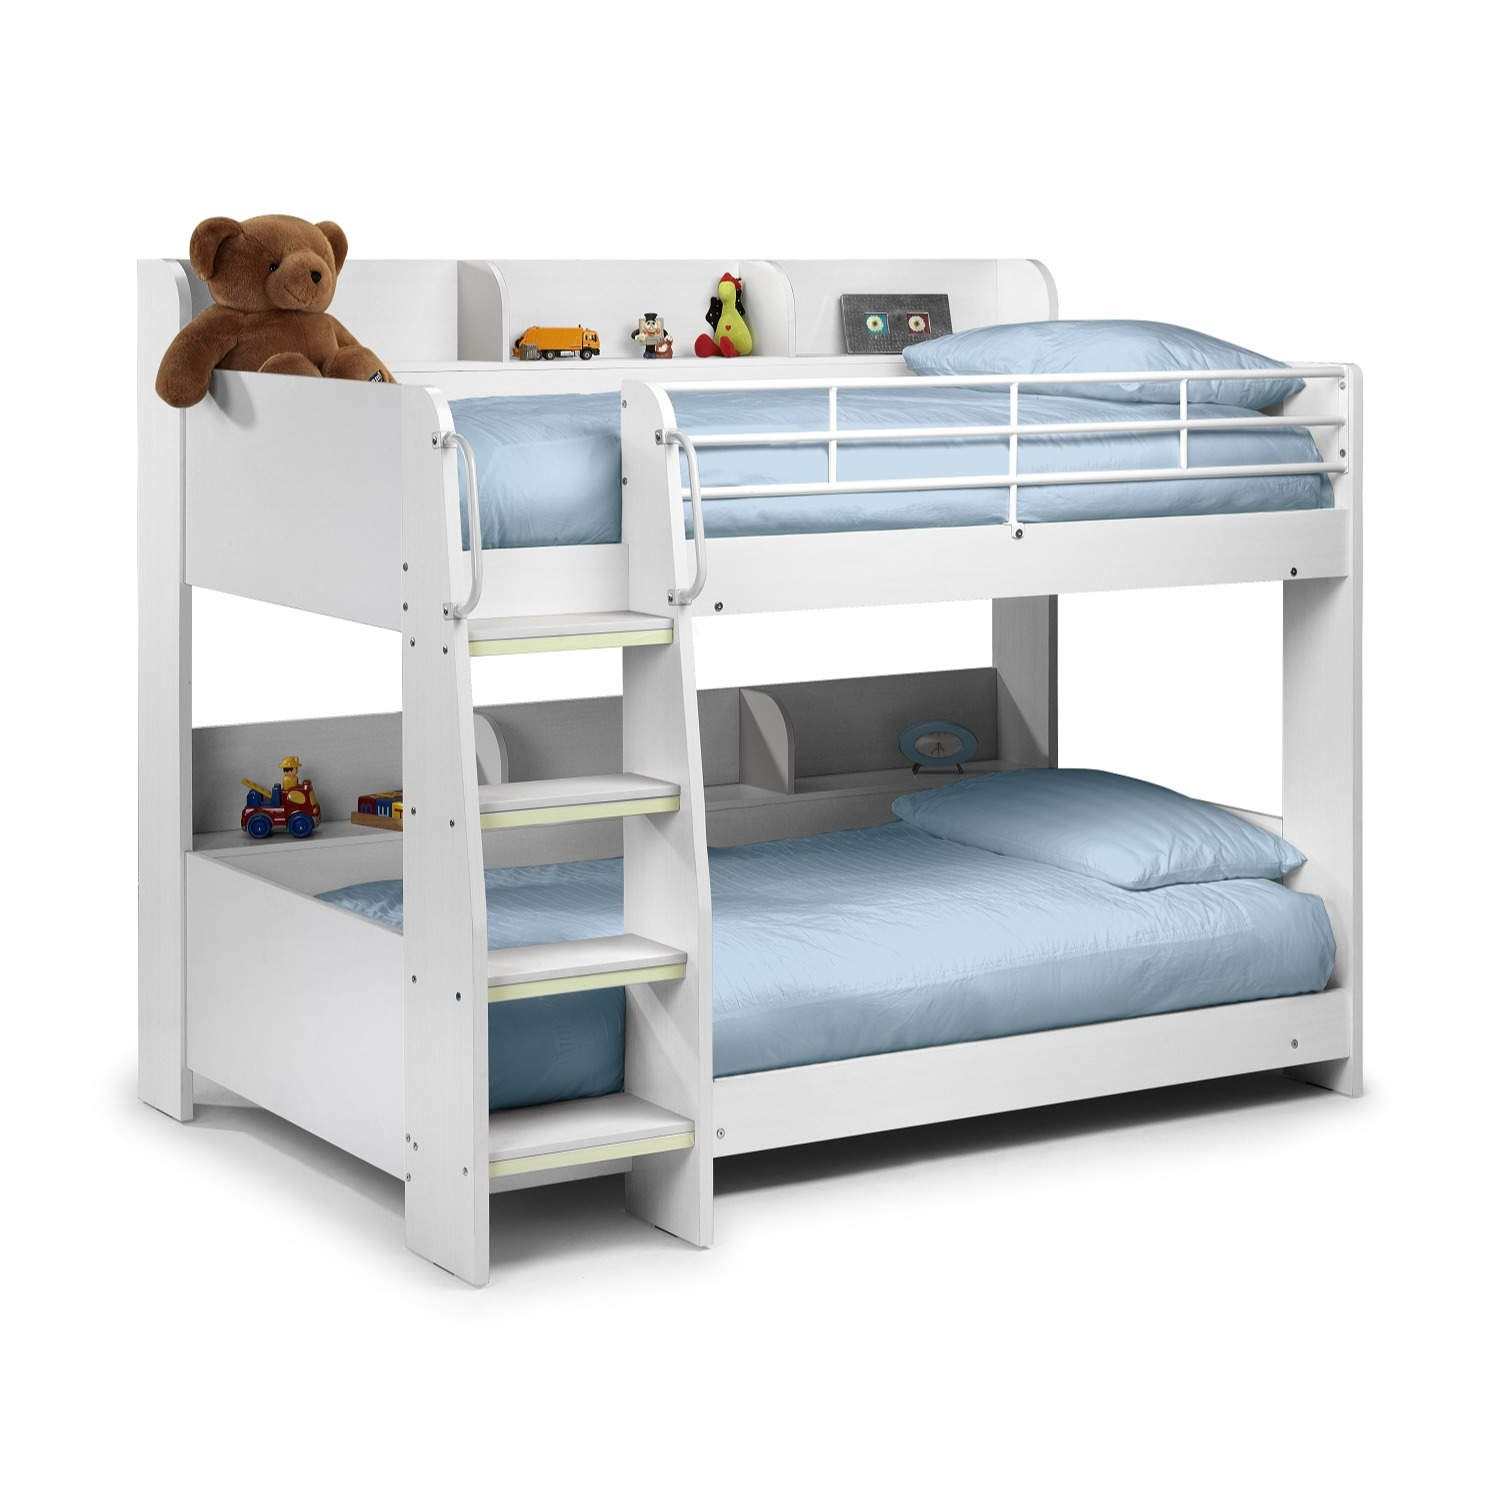 Modern Kids White Wooden Julian Bowen Domino Bunk Bed